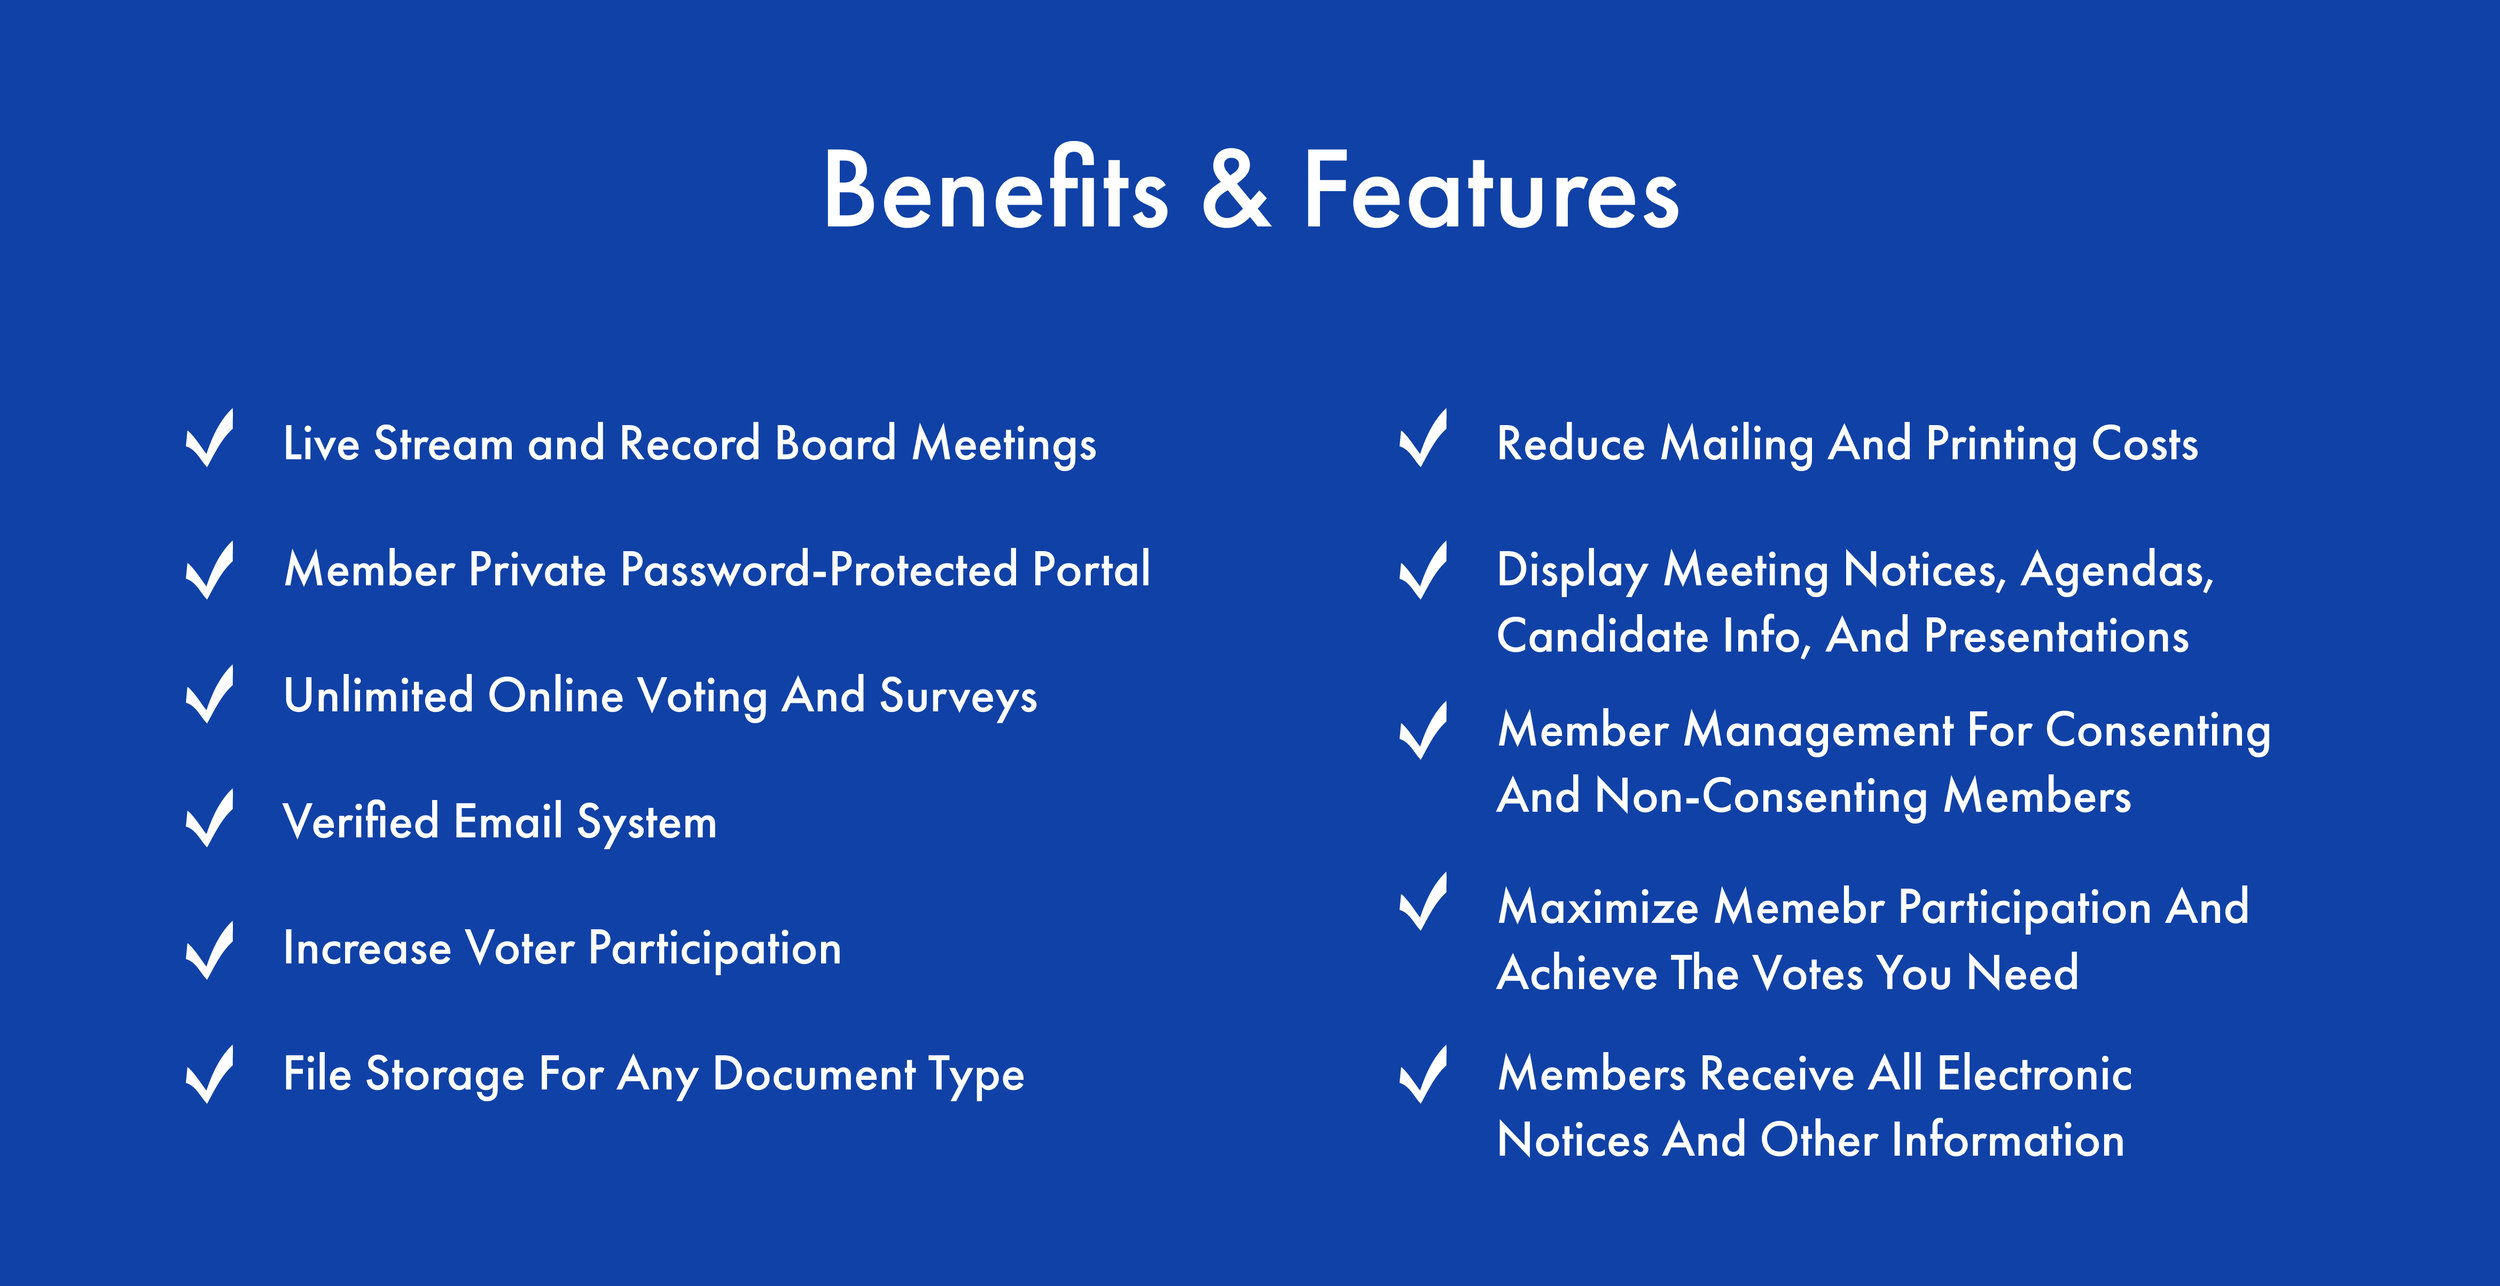 Benefits and Features.jpg